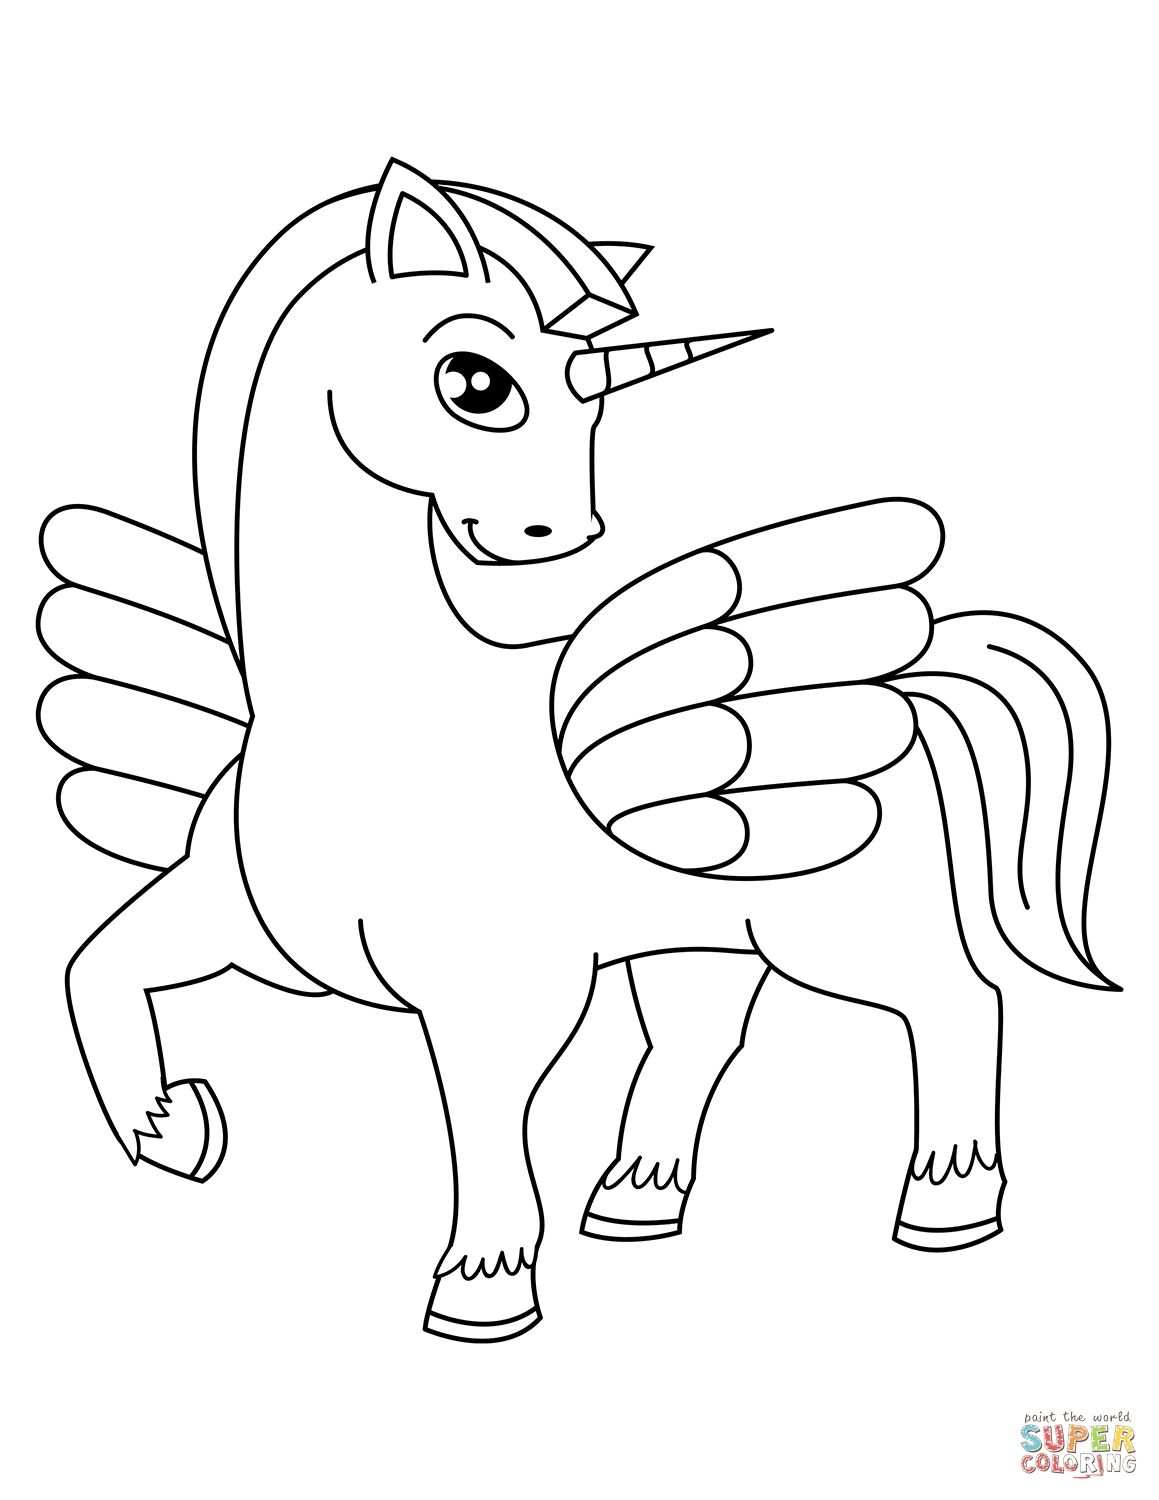 Unicorn Coloring Sheet Pdf Coloring Pages Allow Kids To Accompany Their Favorite Characters On An Adventure Our Free Best Cartoon Printable Can Do Just That